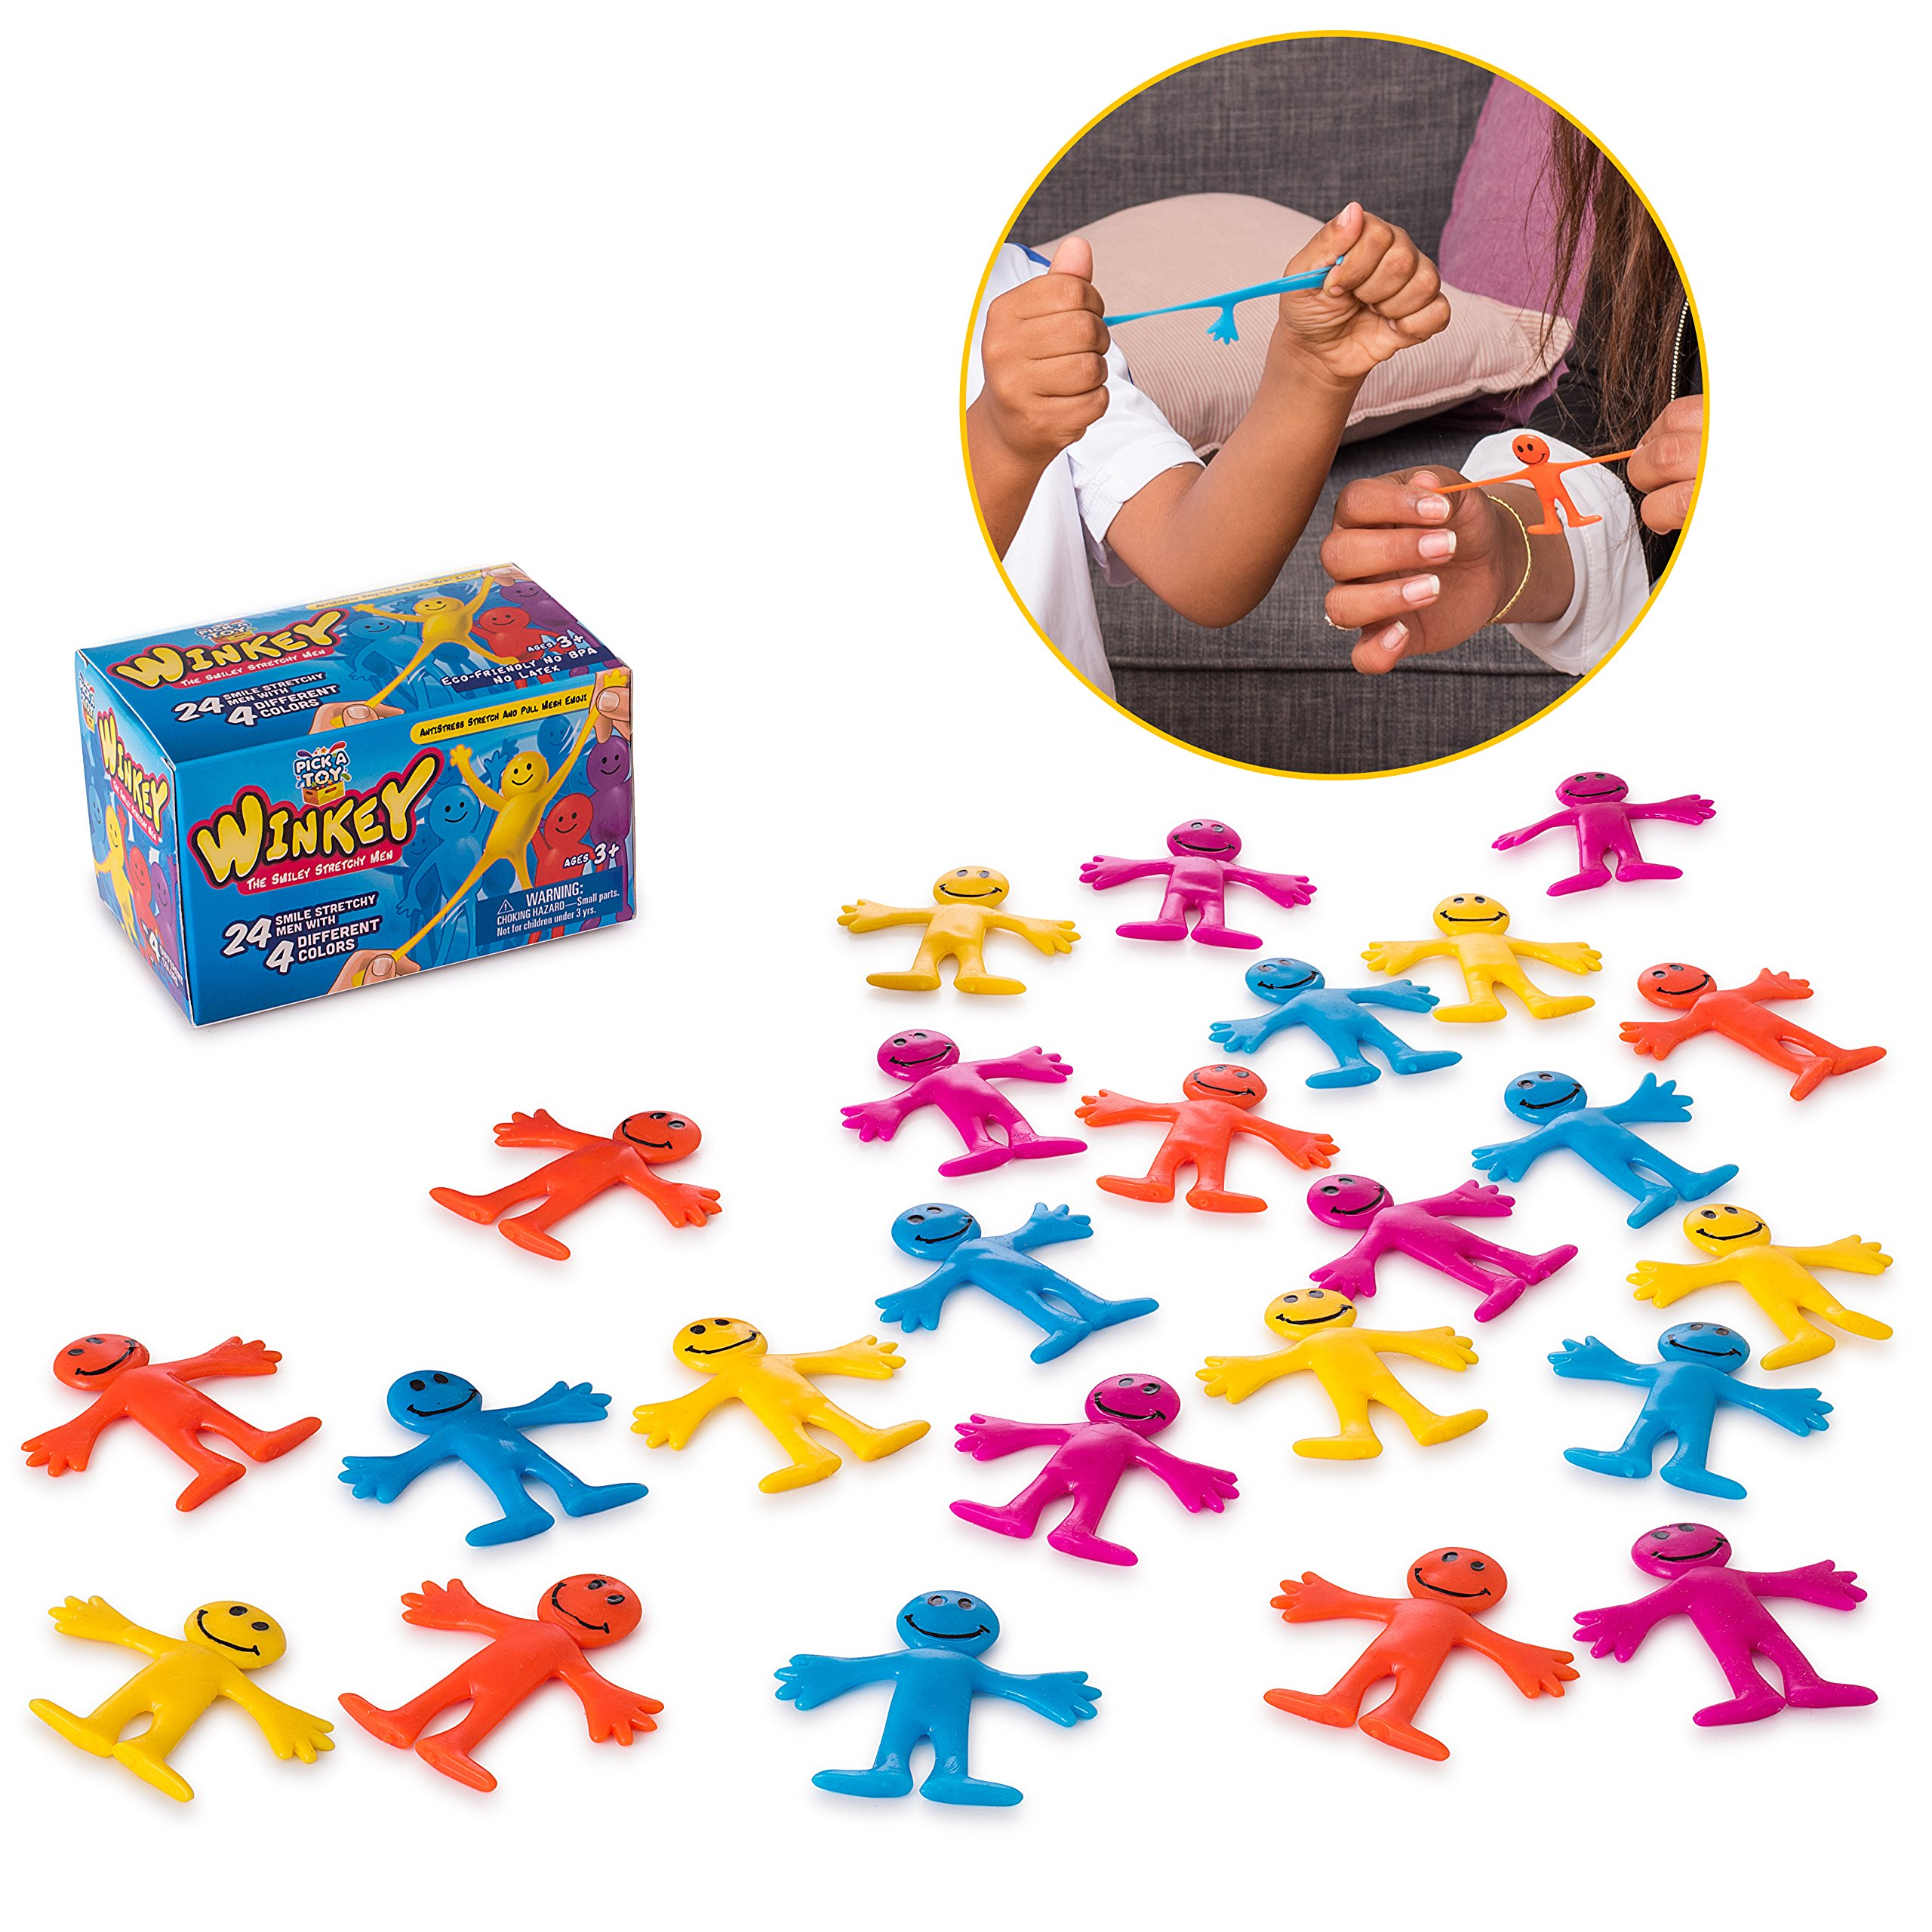 Smiley Stretchy Man (24 set) Sensory Gel Toy Kids Stress Relief Fidget Party Favor For Autism & ADHD